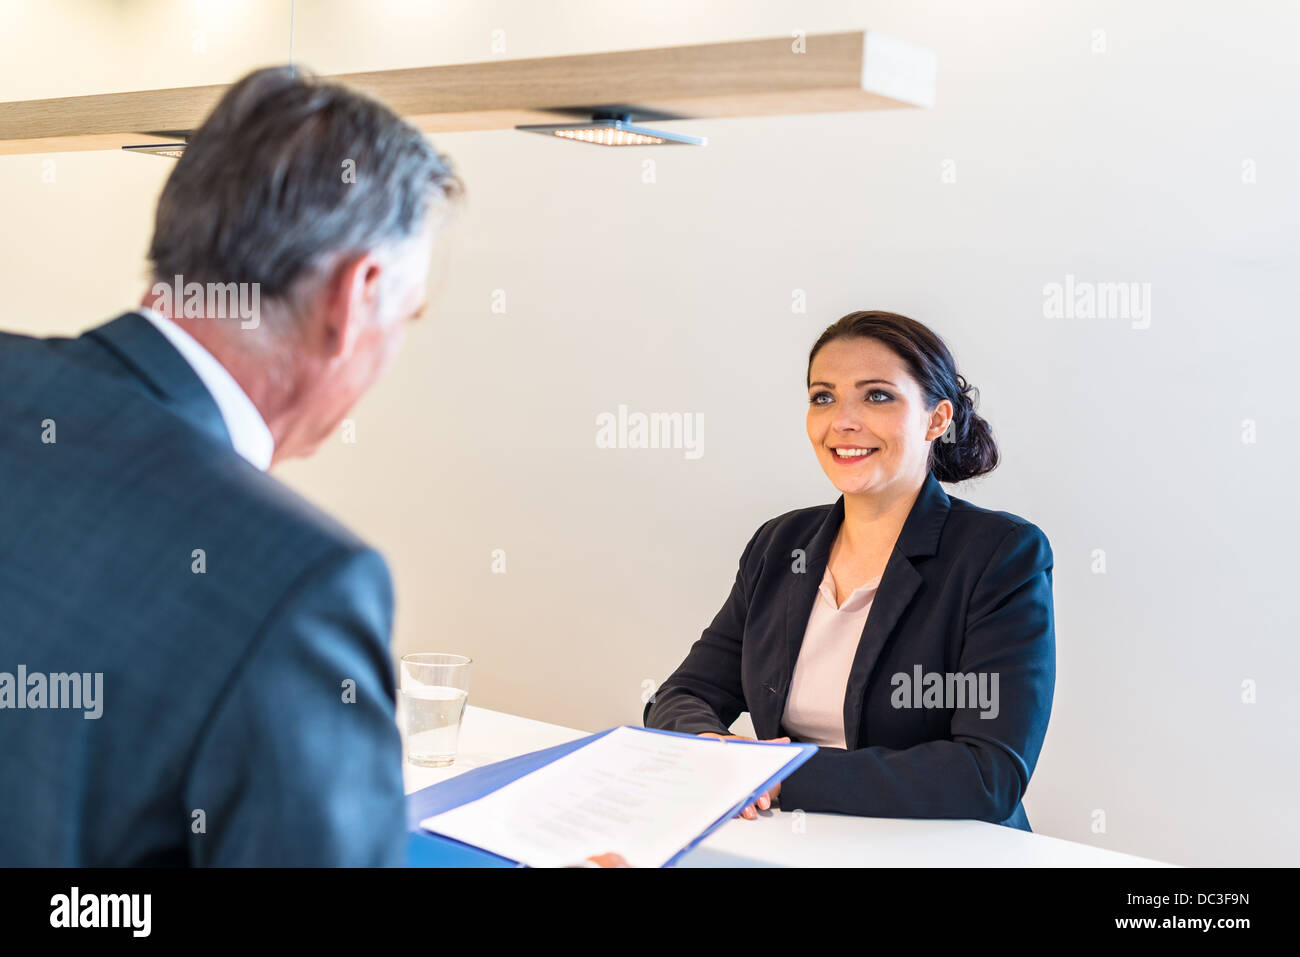 Recruiter (middle aged business man) checking the candidate, an attractive younger woman, during job interview - Stock Image